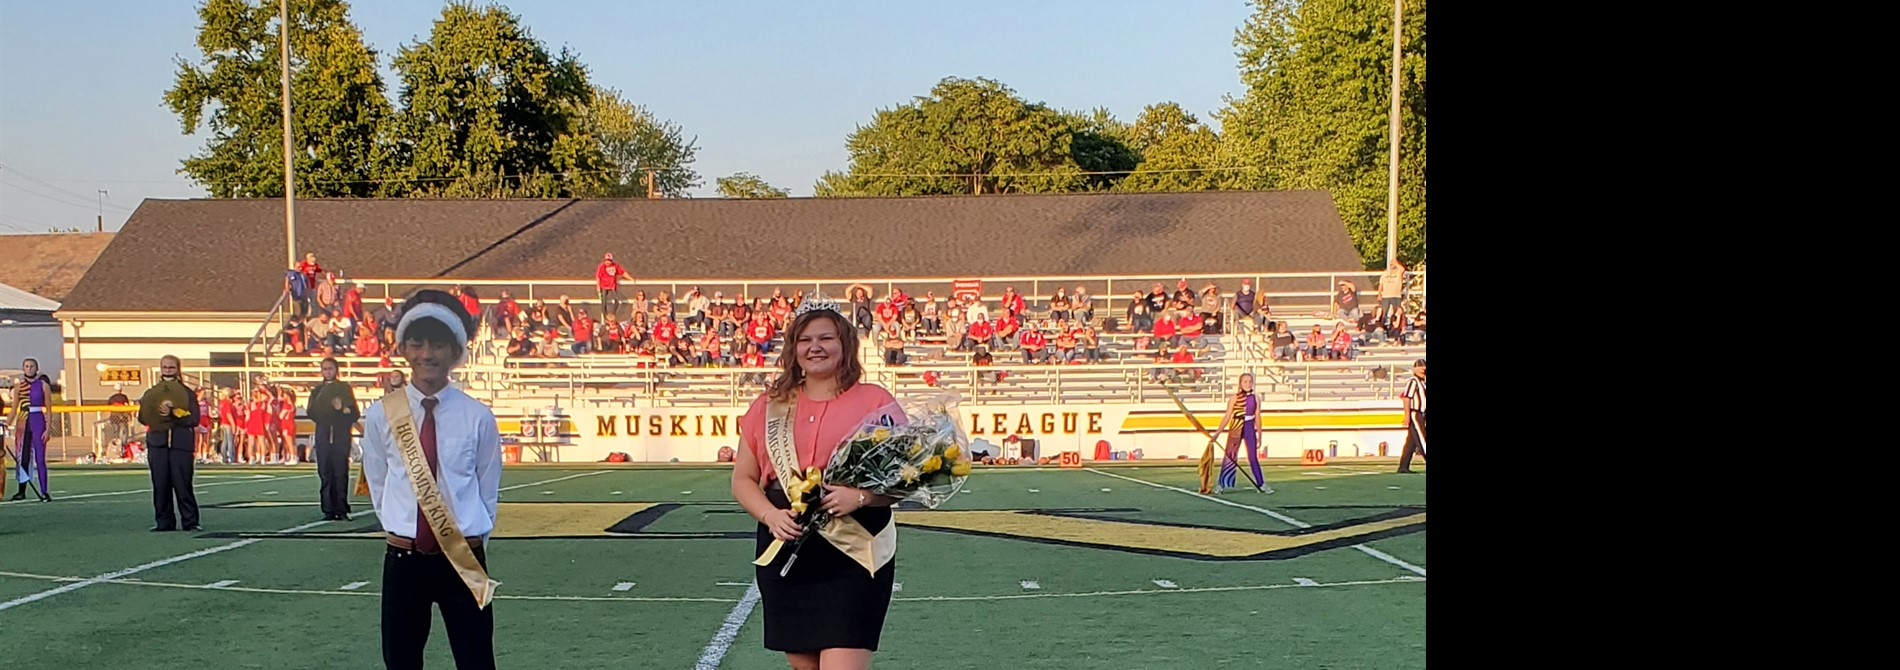 2020 Homecoming King Gino Repuyan and Queen Tayler Wolford